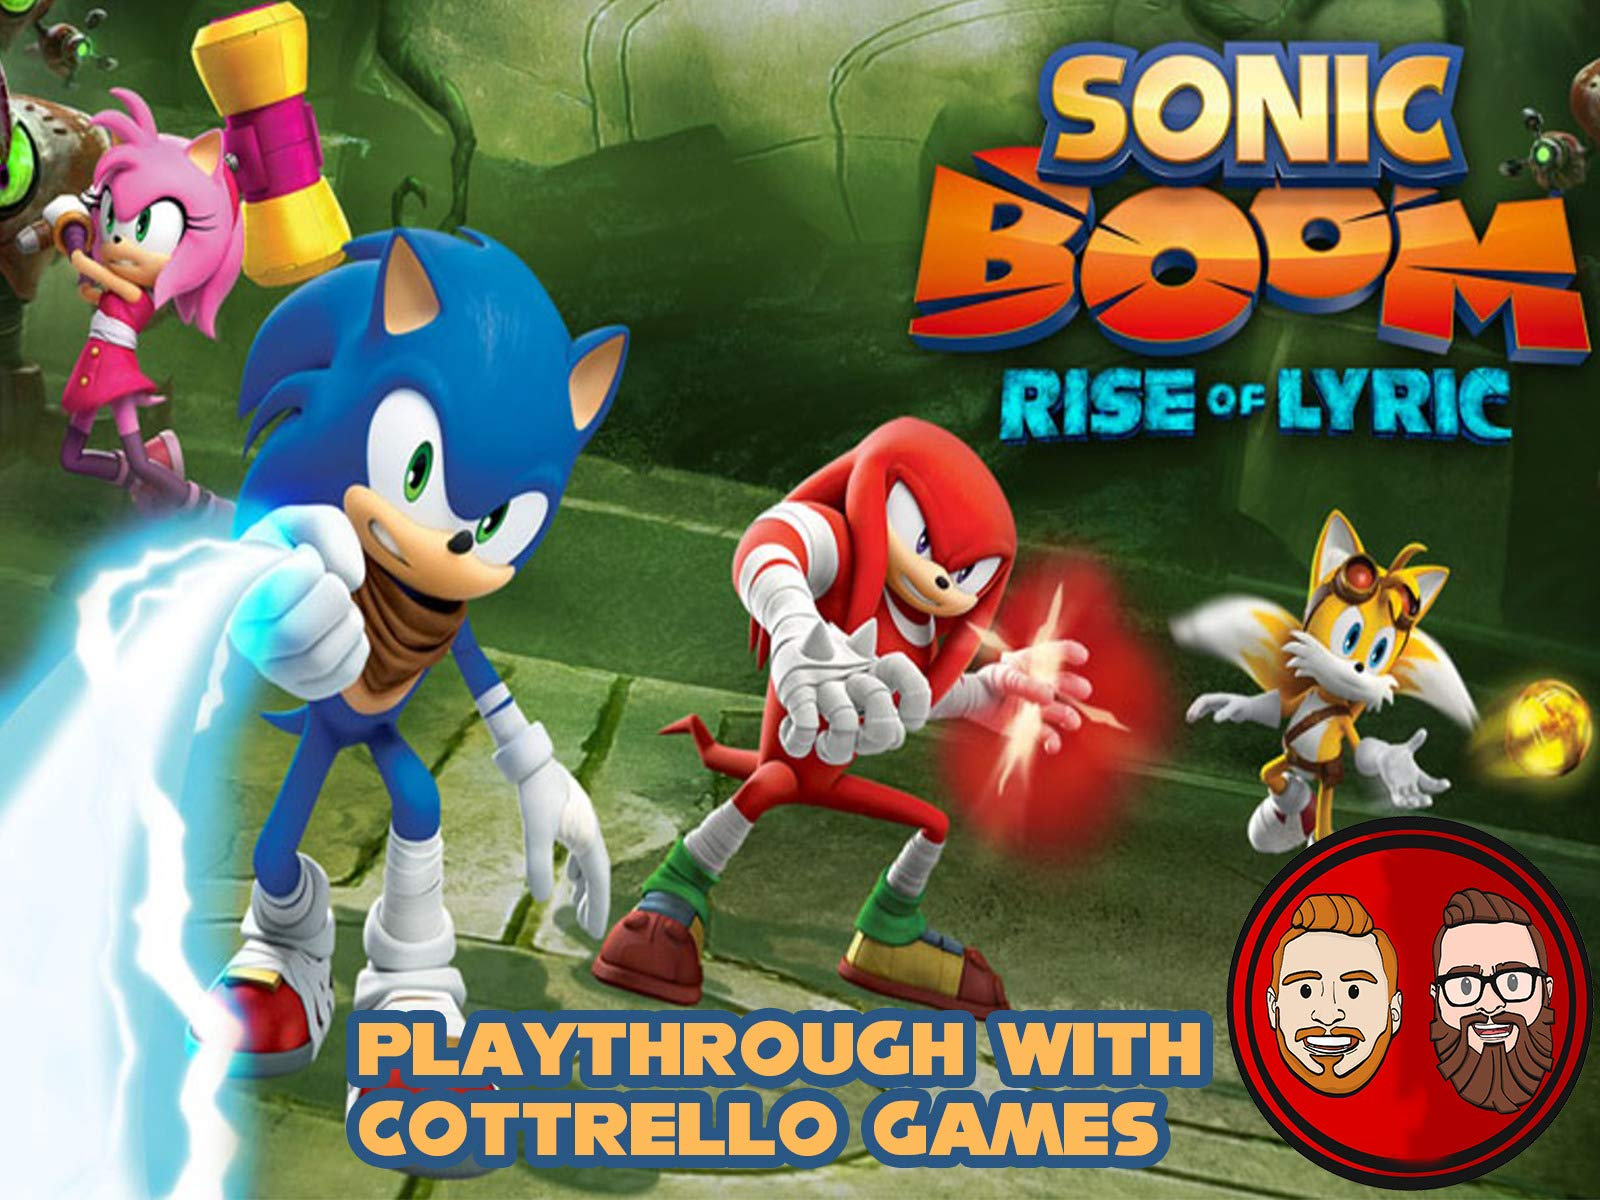 Sonic Boom Rise of Lyric Playthrough with Cottrello Games